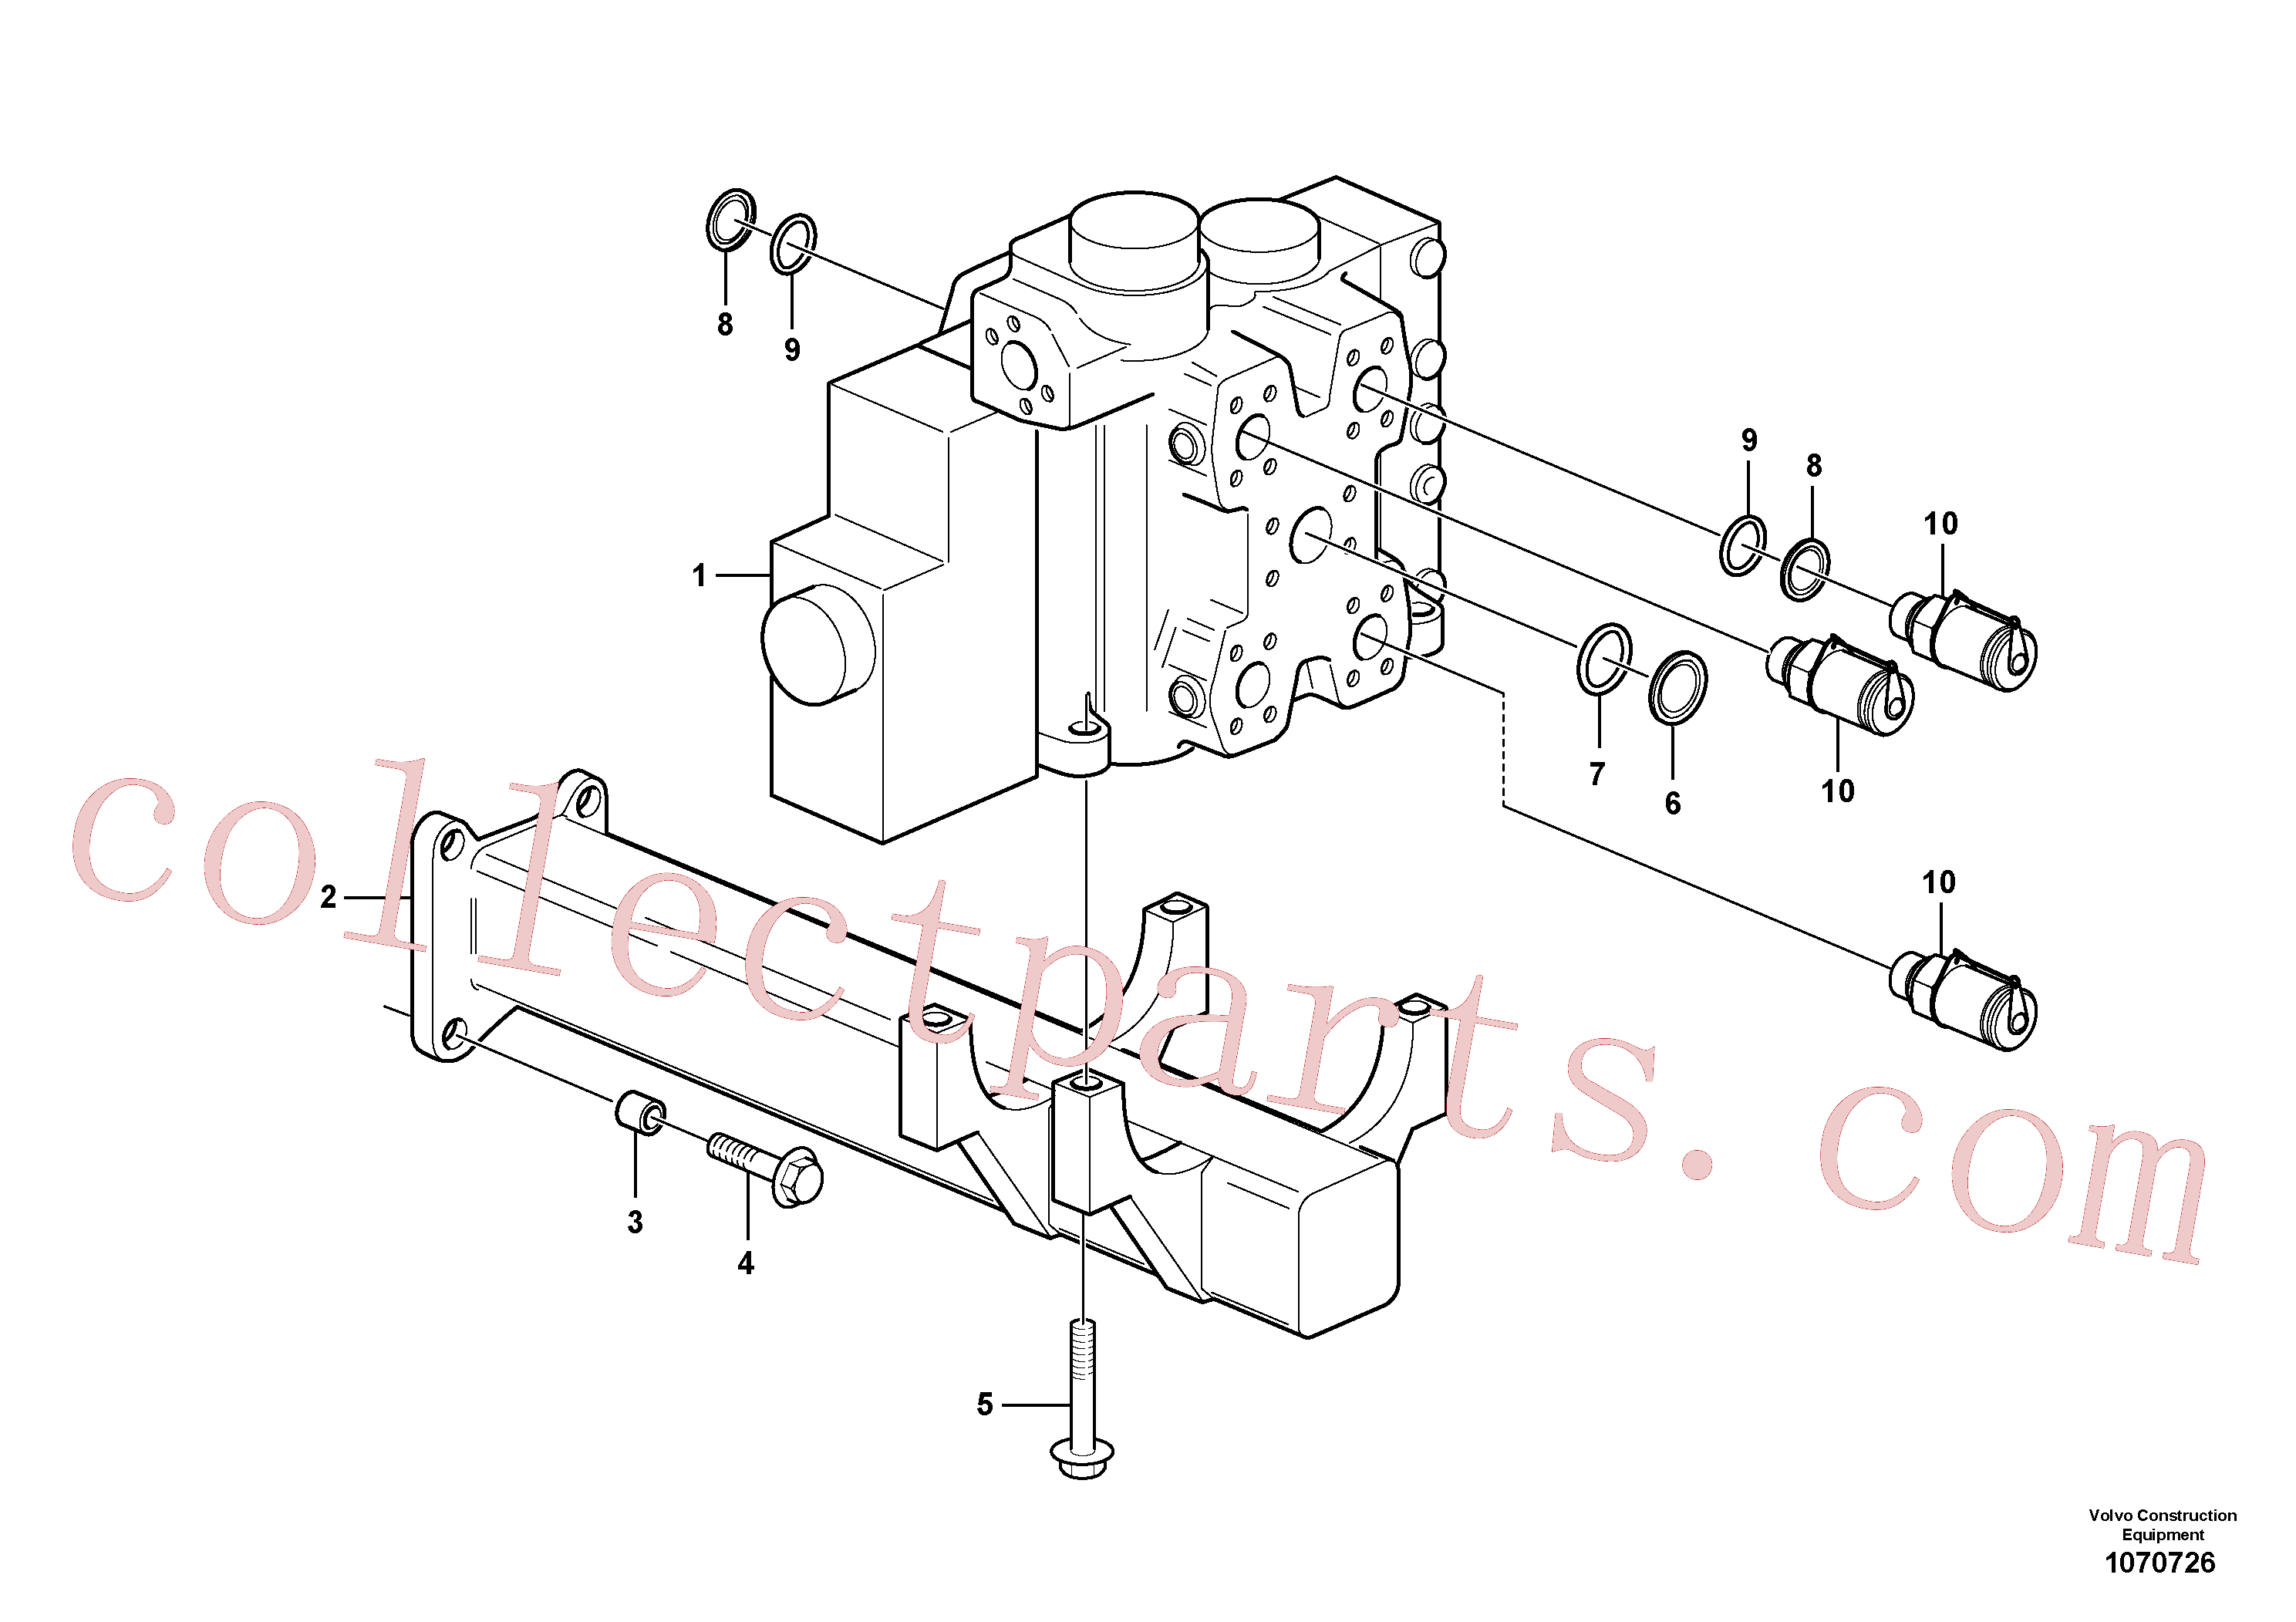 VOE11108798 for Volvo Control valve with fitting parts.(1070726 assembly)